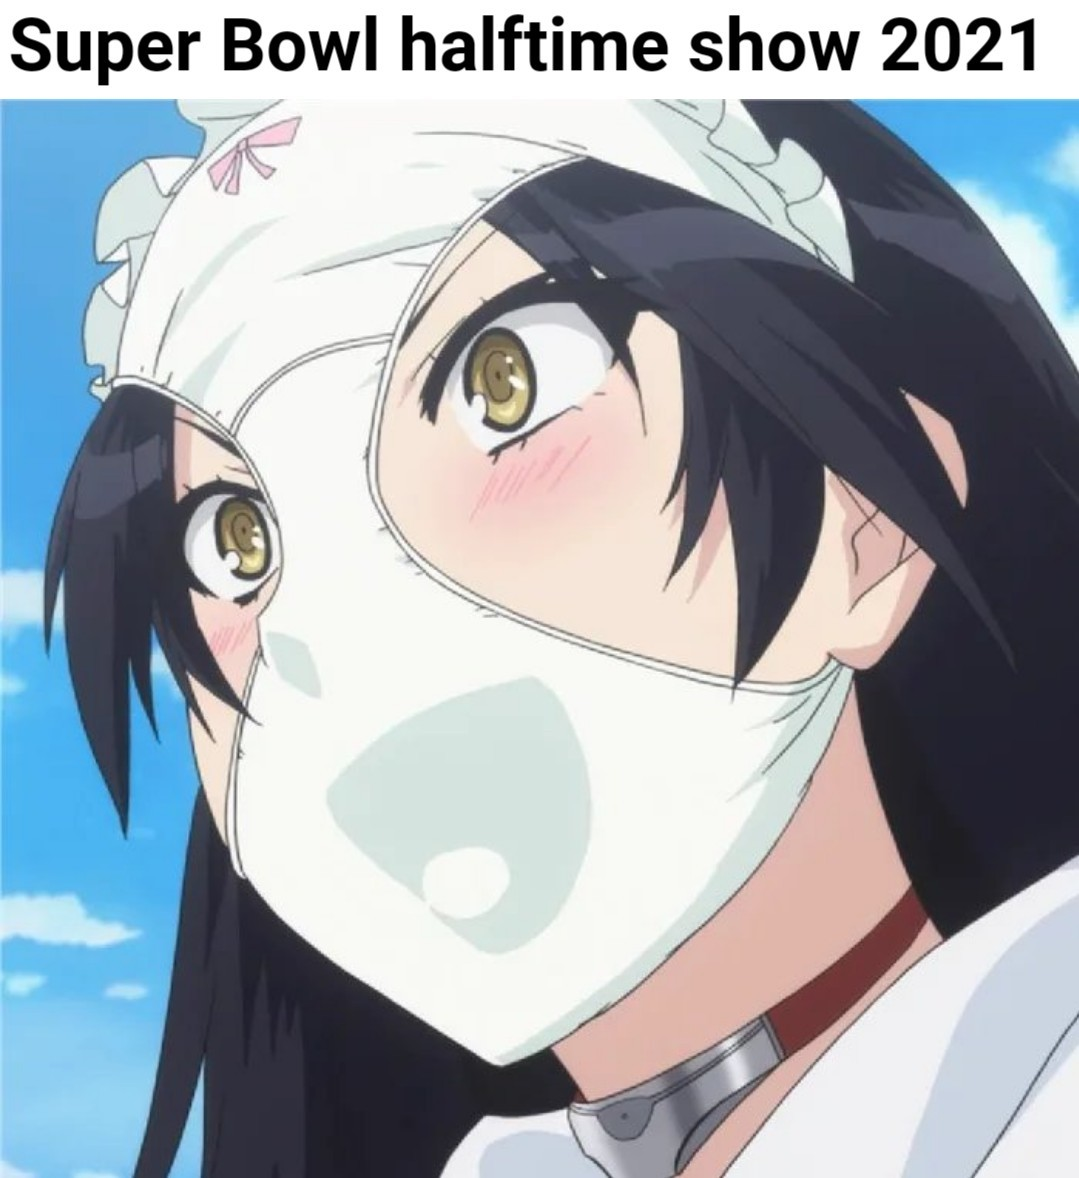 Super Bowl 2021 halftime was like - meme